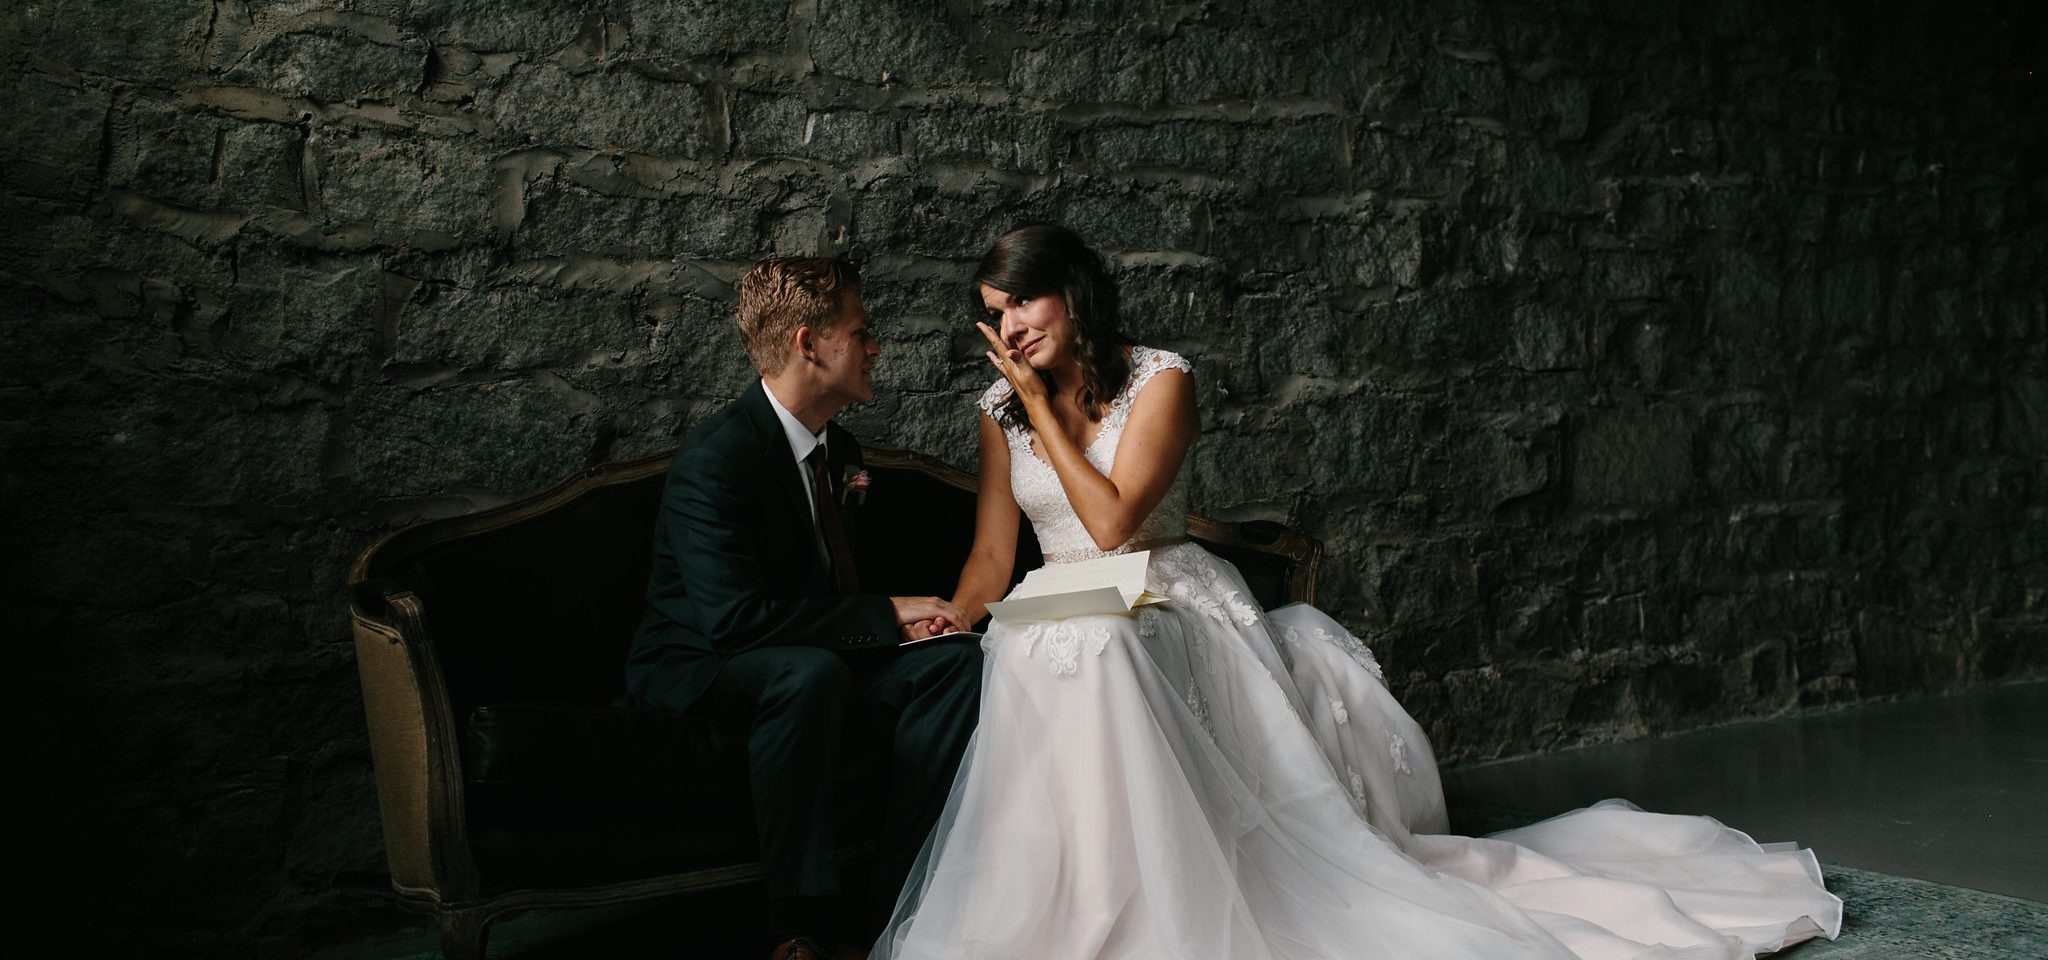 intimate first look bride and groom wedding photos